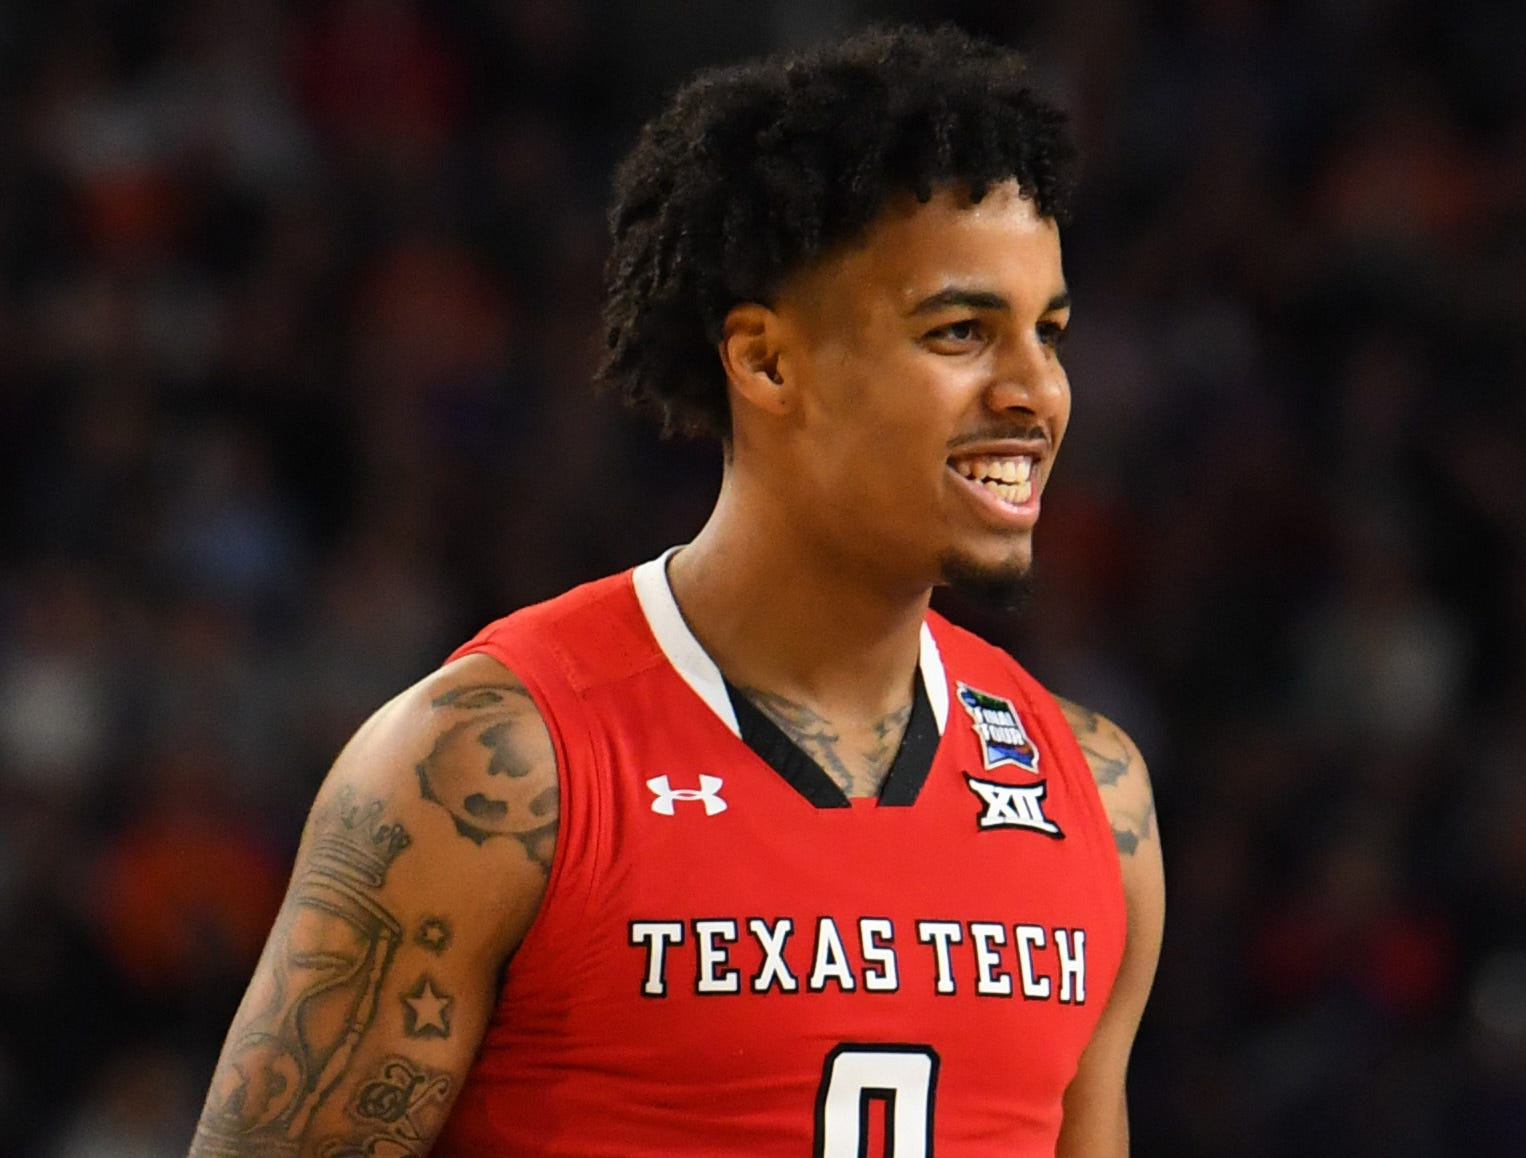 Apr 8, 2019; Minneapolis, MN, USA; Texas Tech Red Raiders guard Kyler Edwards (0) reacts after a score against the Virginia Cavaliers in the championship game of the 2019 men's Final Four at US Bank Stadium. Mandatory Credit: Robert Deutsch-USA TODAY Sports